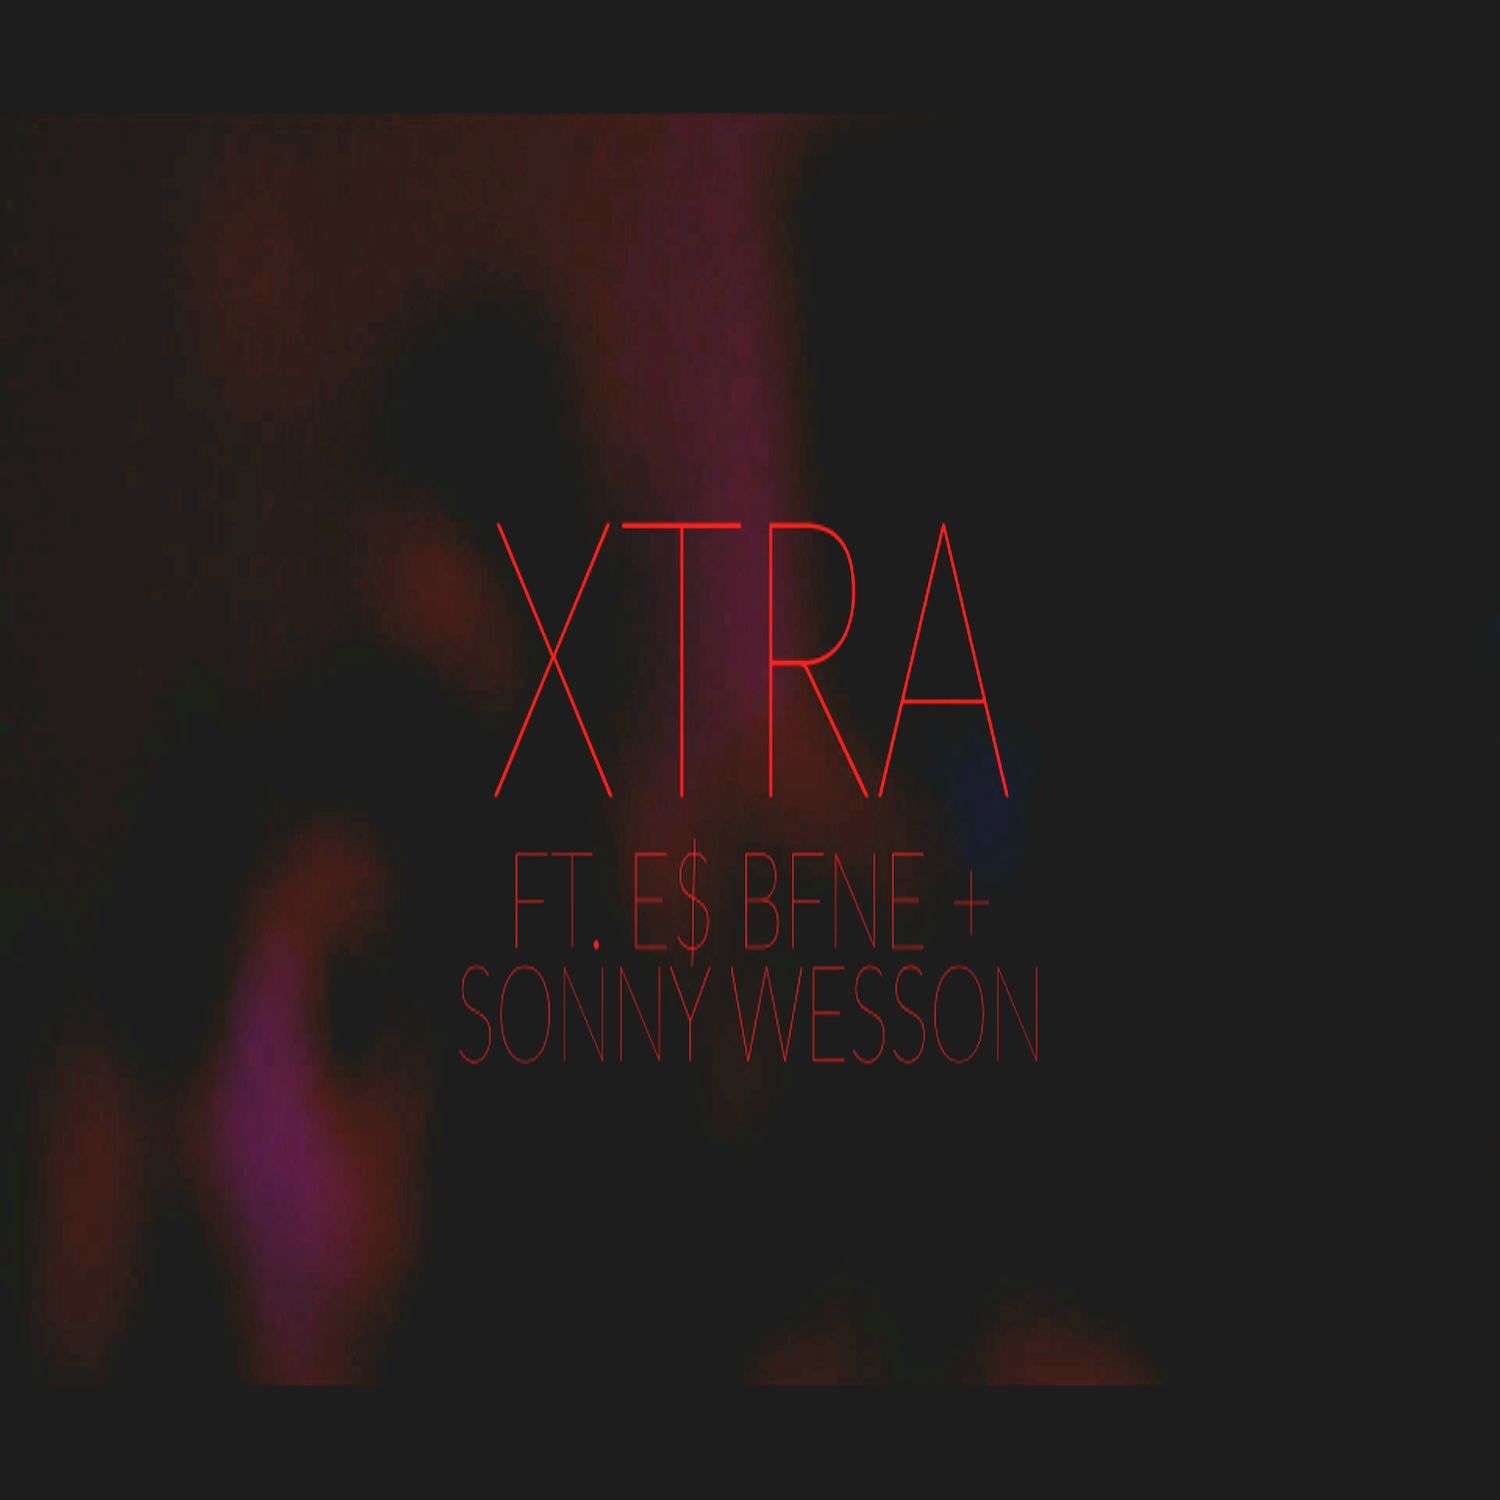 """Sick.Life Feat E$ BFNE & Sonny Wesson – Xtra """"VMG Exclusive"""""""